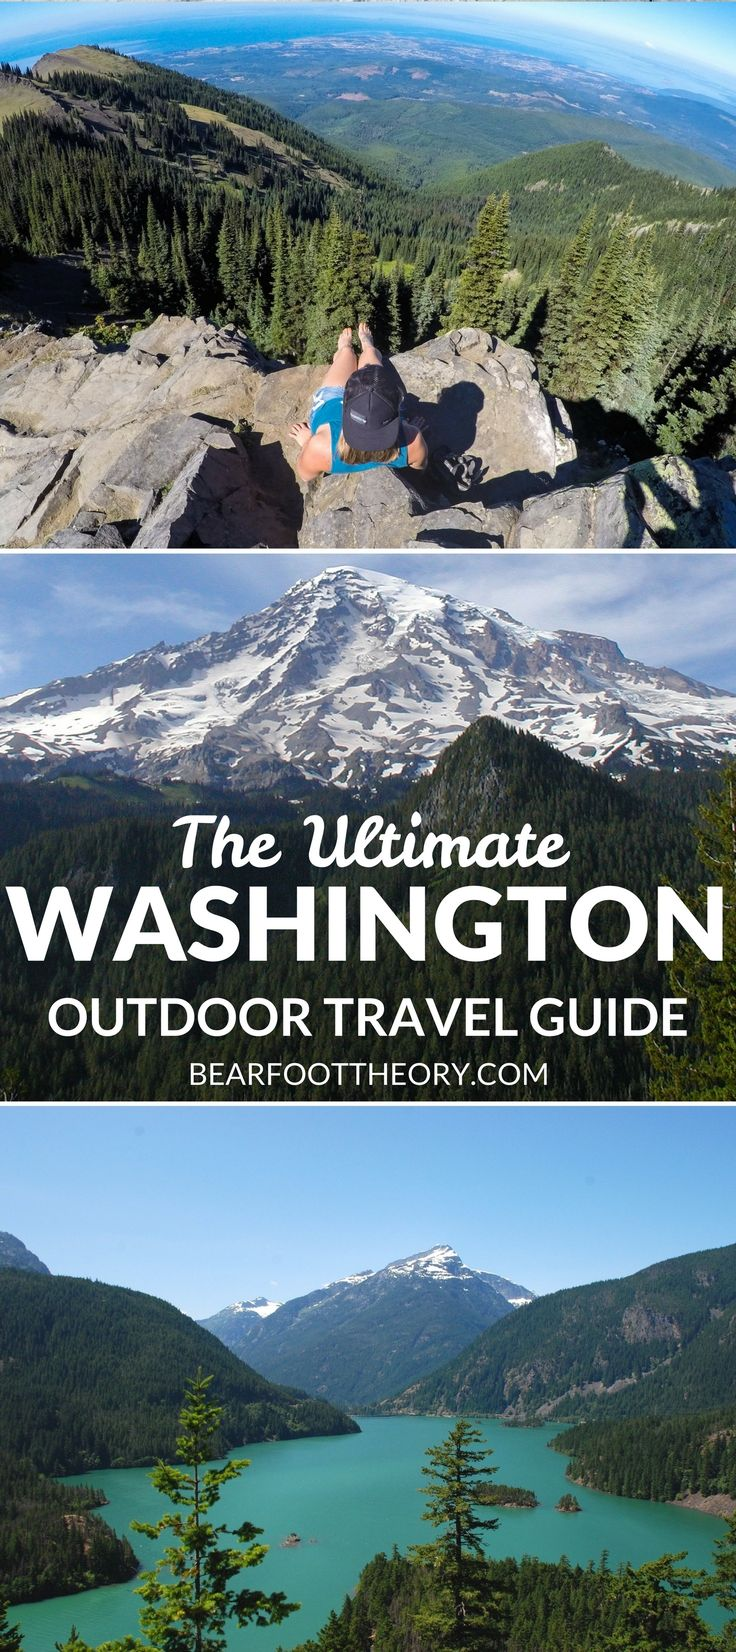 Plan an adventurous trip to Washington with our outdoor travel guide featuring the best outdoor activities, national parks & most popular blog posts.